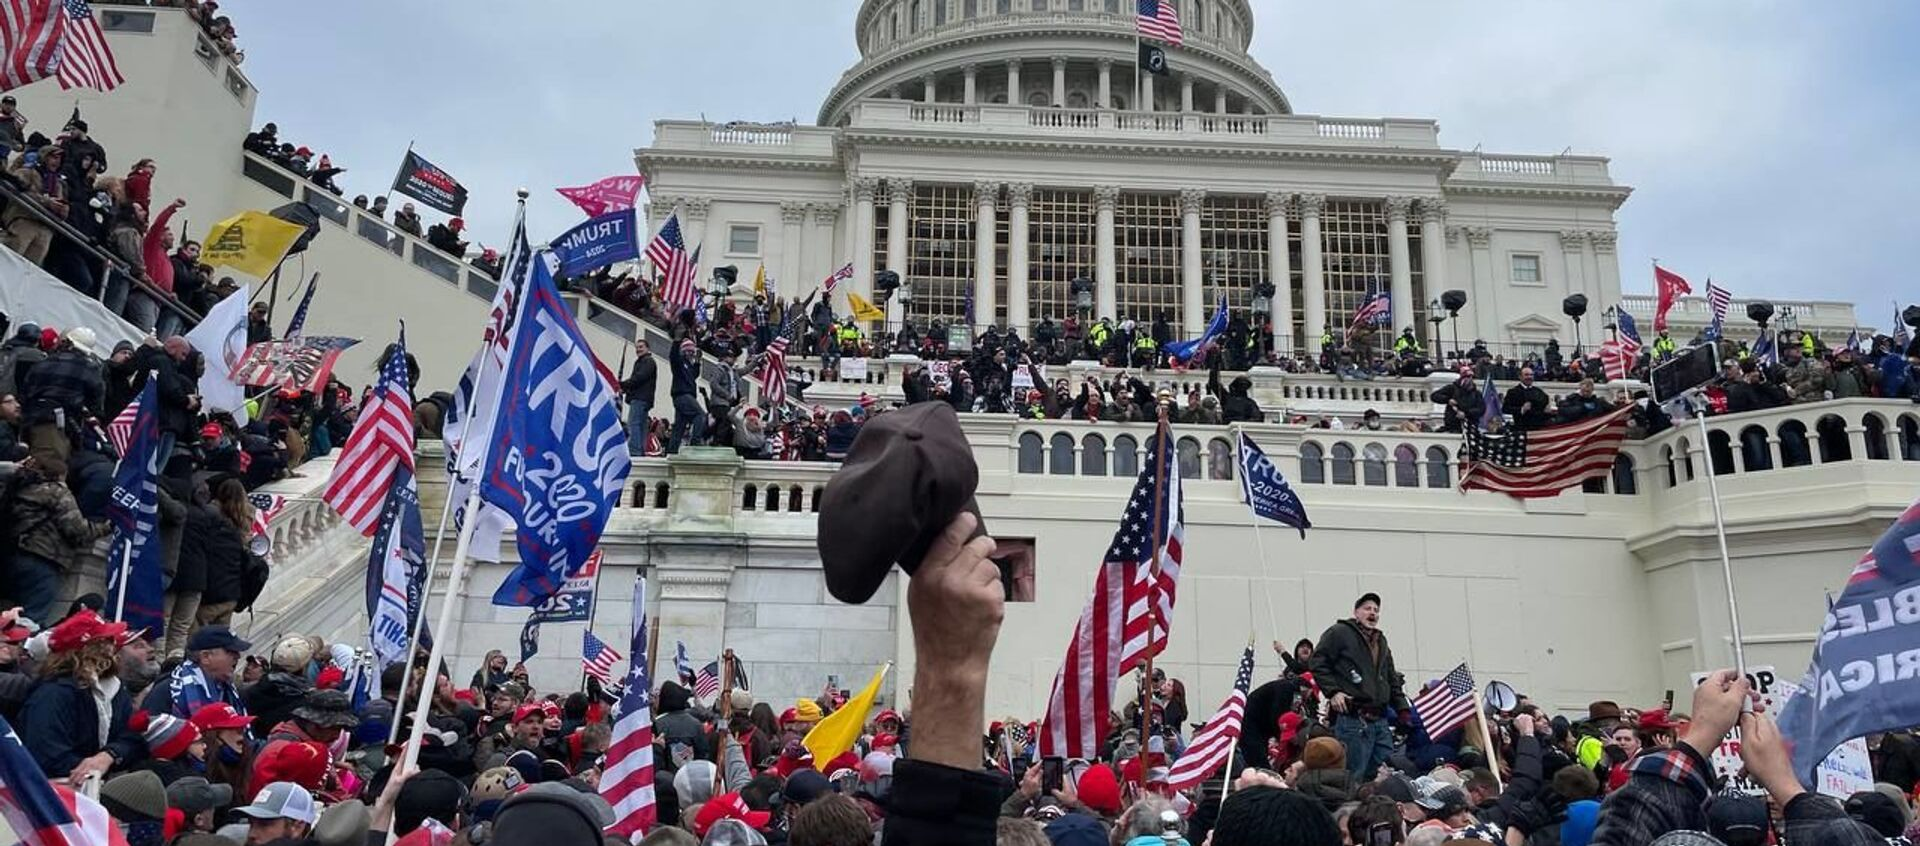 Demonstrators protest outside US Capitol Building in Washington to contest the certification of the 2020 presidential election results by the US Congress, 6 January 2021 - Sputnik International, 1920, 26.07.2021